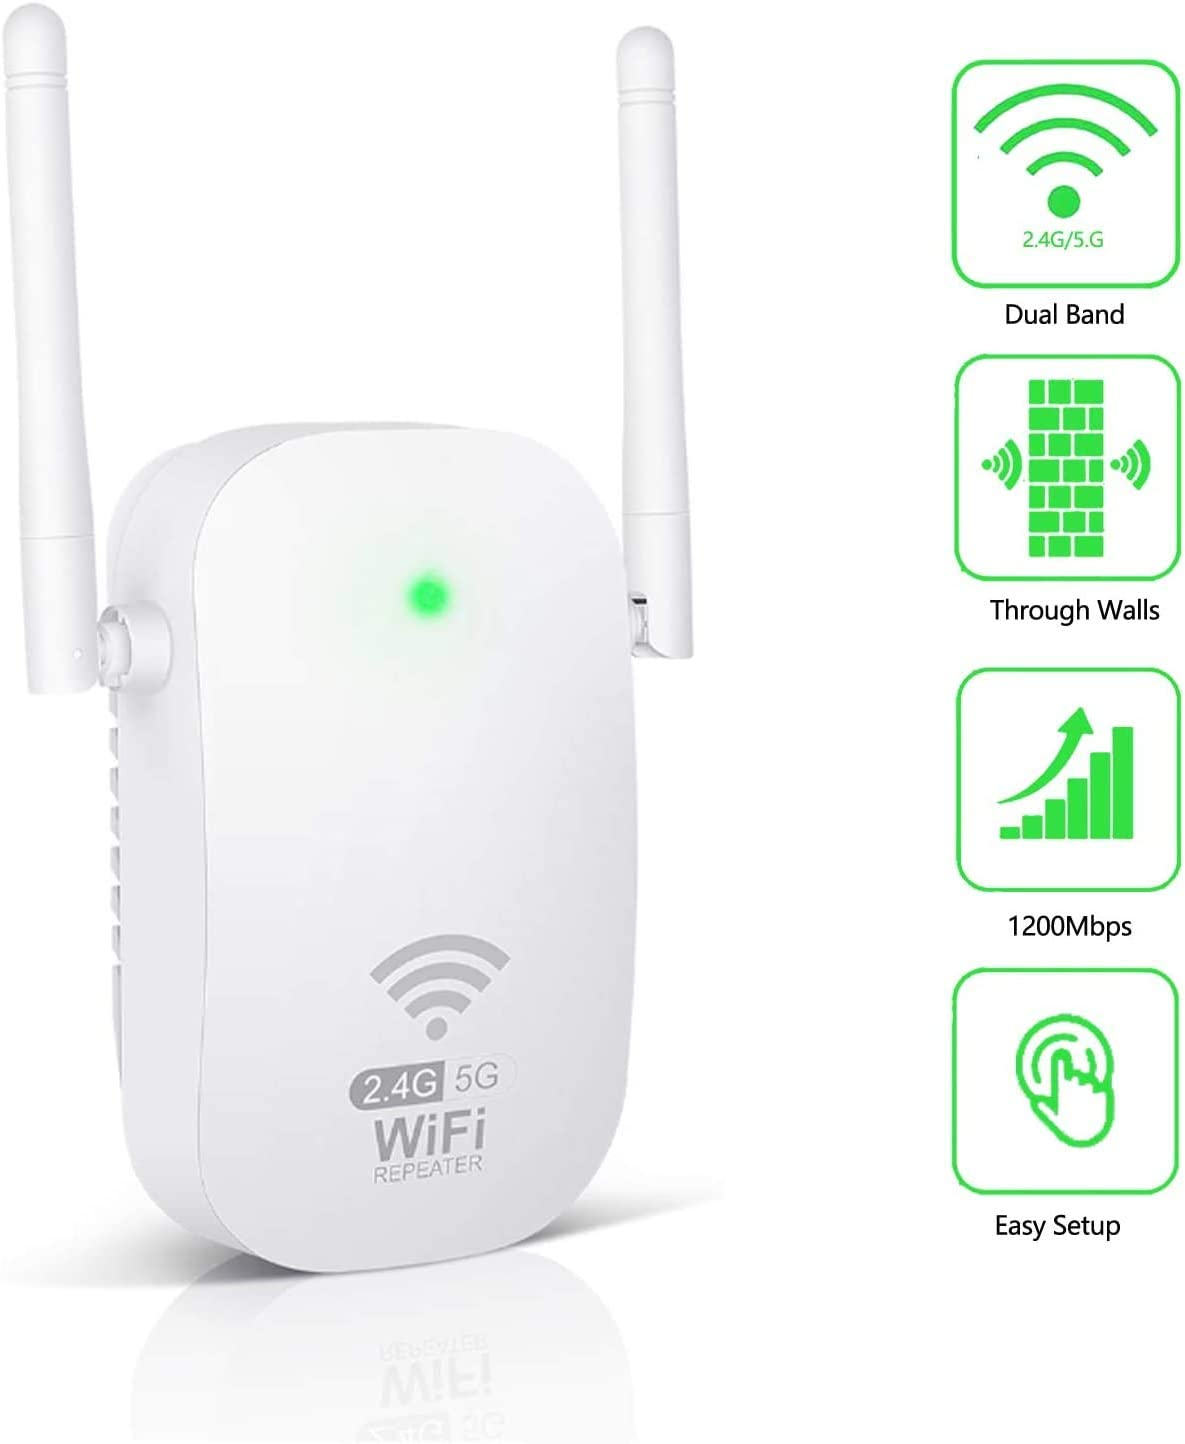 WiFi Range Extender 1200Mbps WiFi Repeater Booster AC1200 for The Hourse, 2.4 & 5GHz Dual Band WPS Wireless Signal Strong Penetrability, Wide Range of Signals(2000FT), Enjoy Gaming